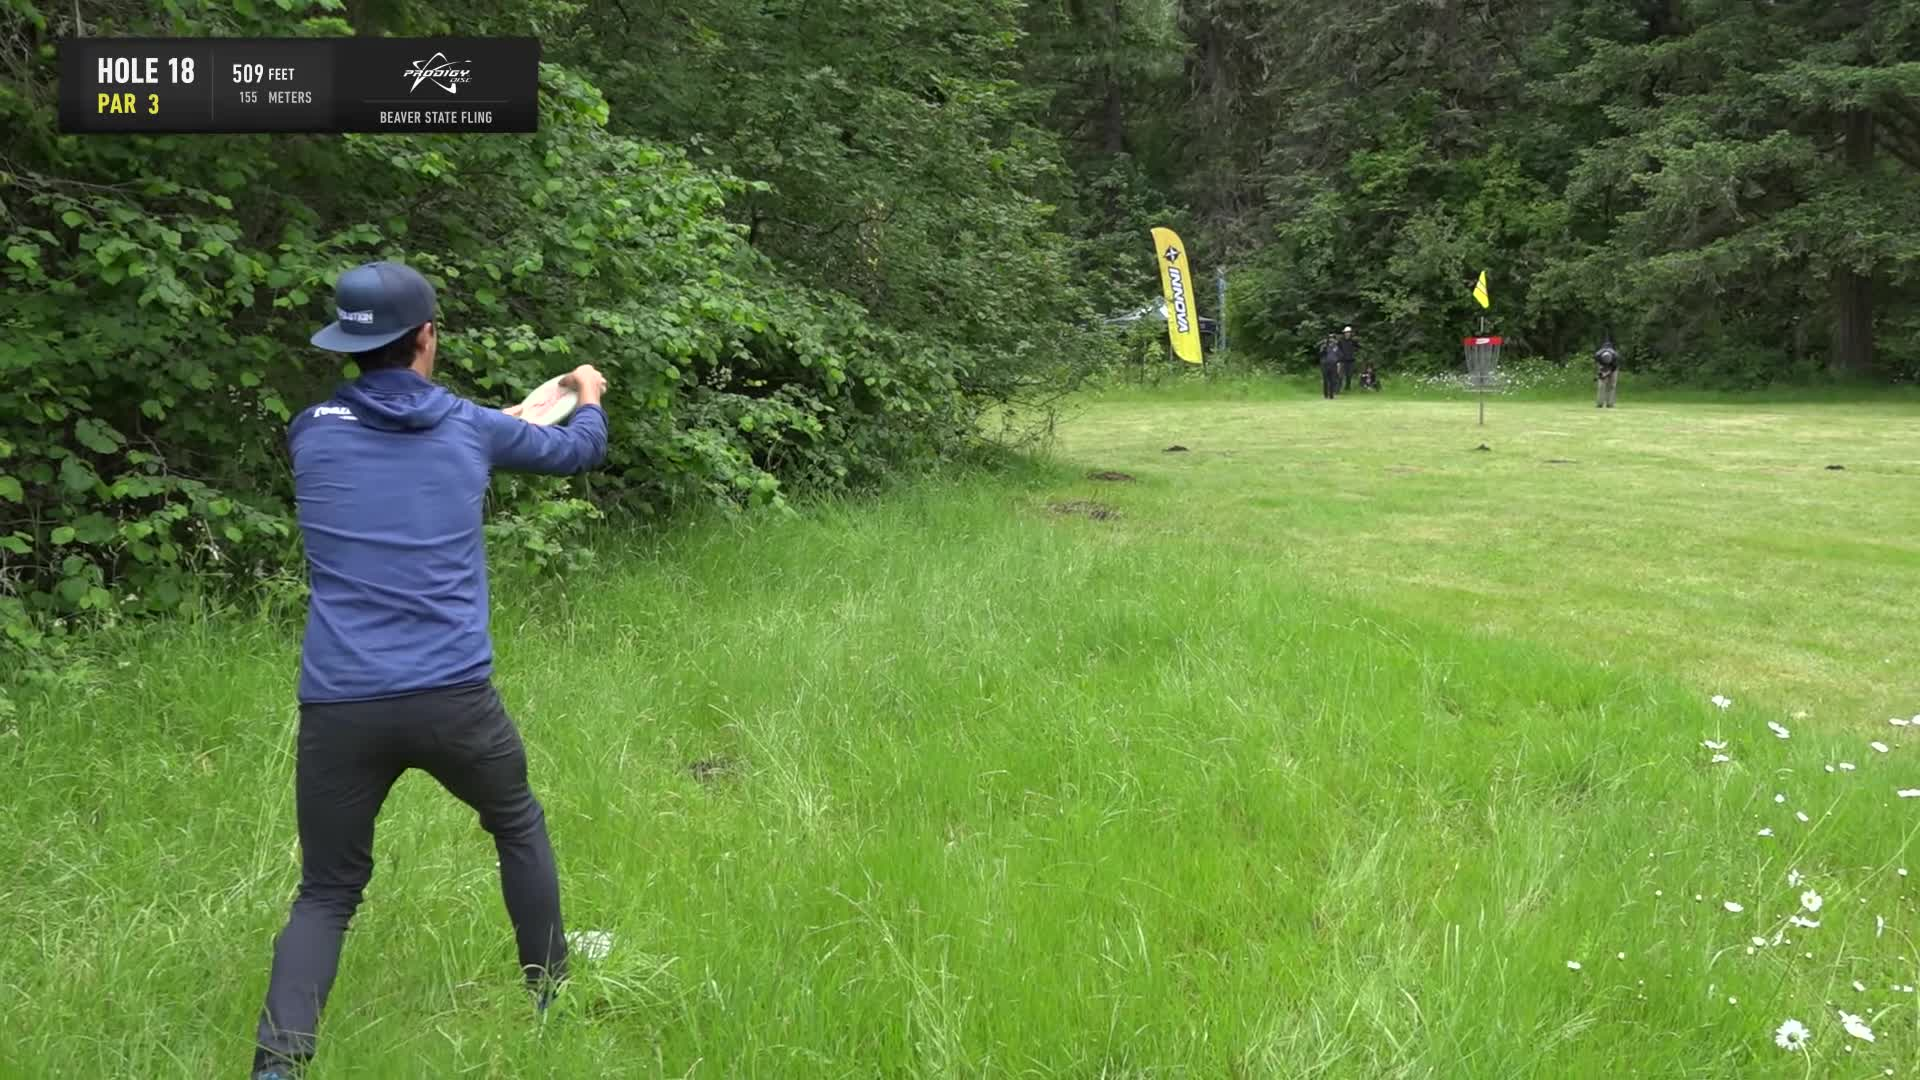 ace, bsf, dela, delaveaga, dgpt, dgwt, disc, disc golf, frolf, hole in one, masters cup, mcbeast, milo, nate sexton, nt, paul mcbeth, pdga, simon lizotte, tournament, worlds, 2019 Beaver State Fling - Round 1 Part 2 -- Eagle Mcmahon hole 18 putt GIFs